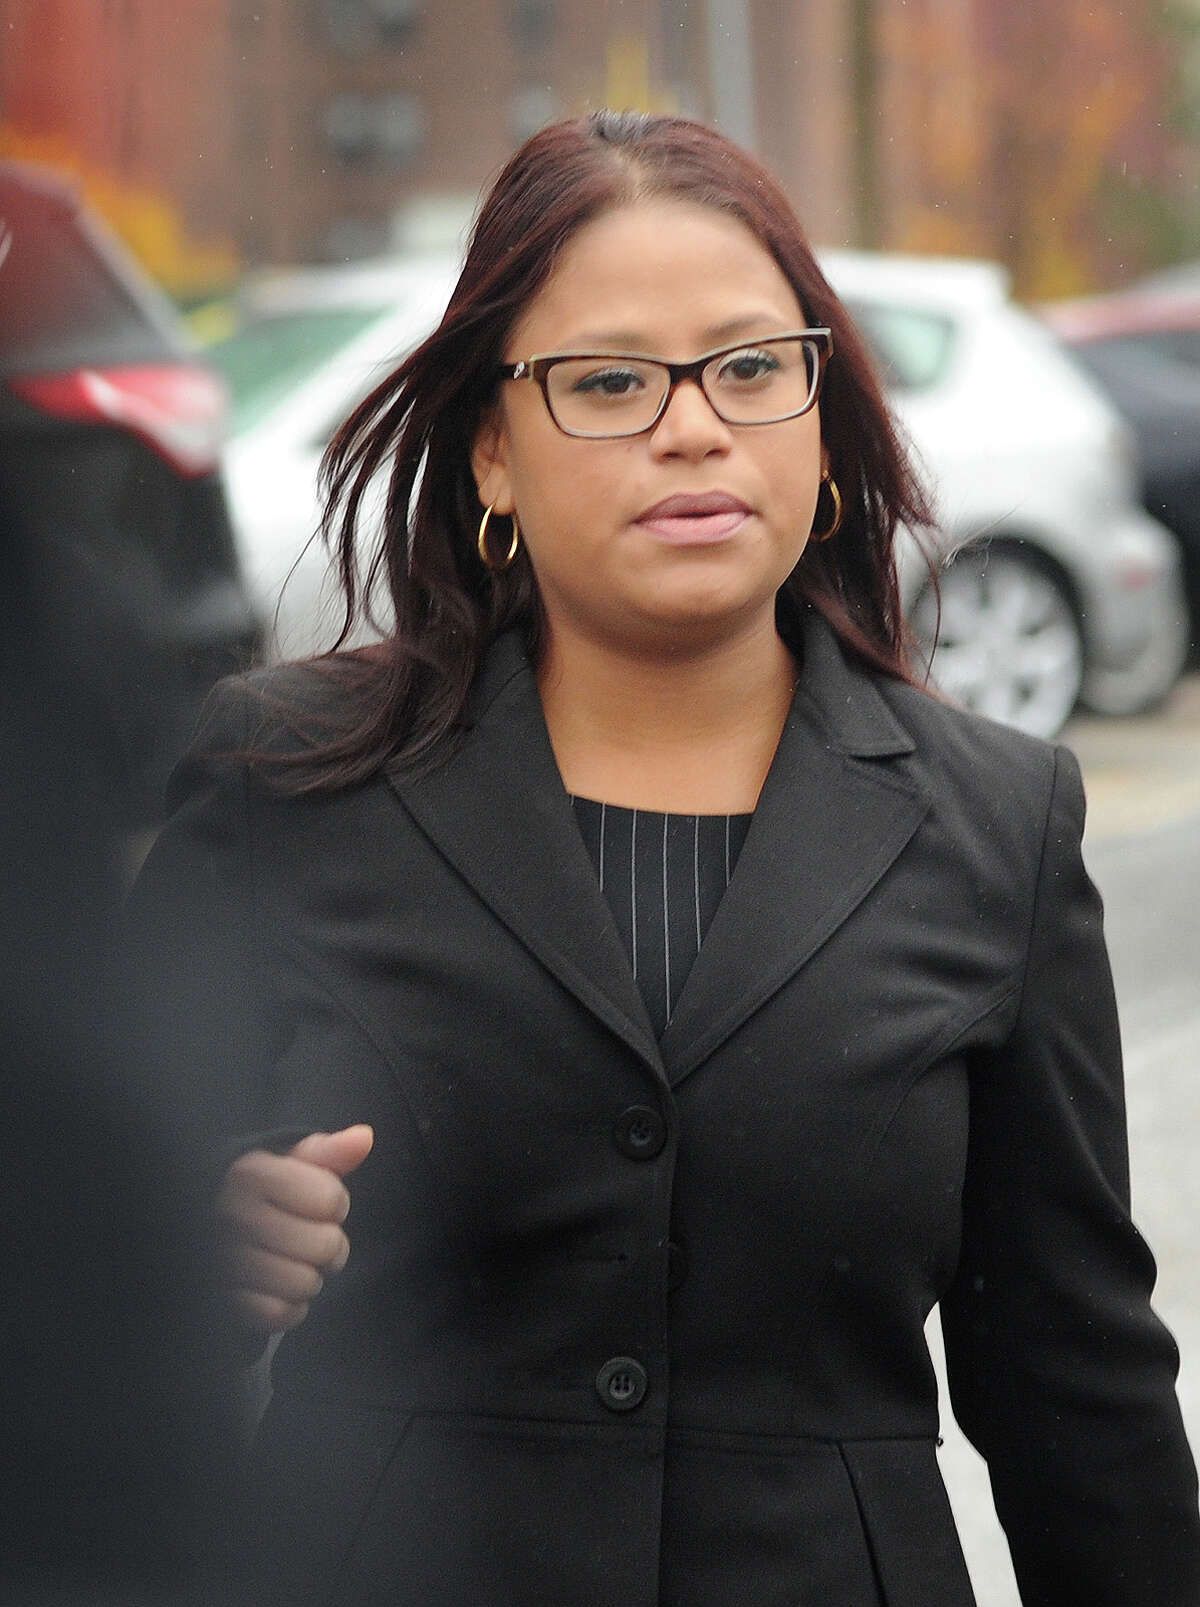 State Rep. Christina Ayala, D-Bridgeport, exits Superior Court in Bridgeport, Conn. on Thursday, November 6, 2014. Ayala, facing multiple charges of voting fraud, had her case continued to December 9.